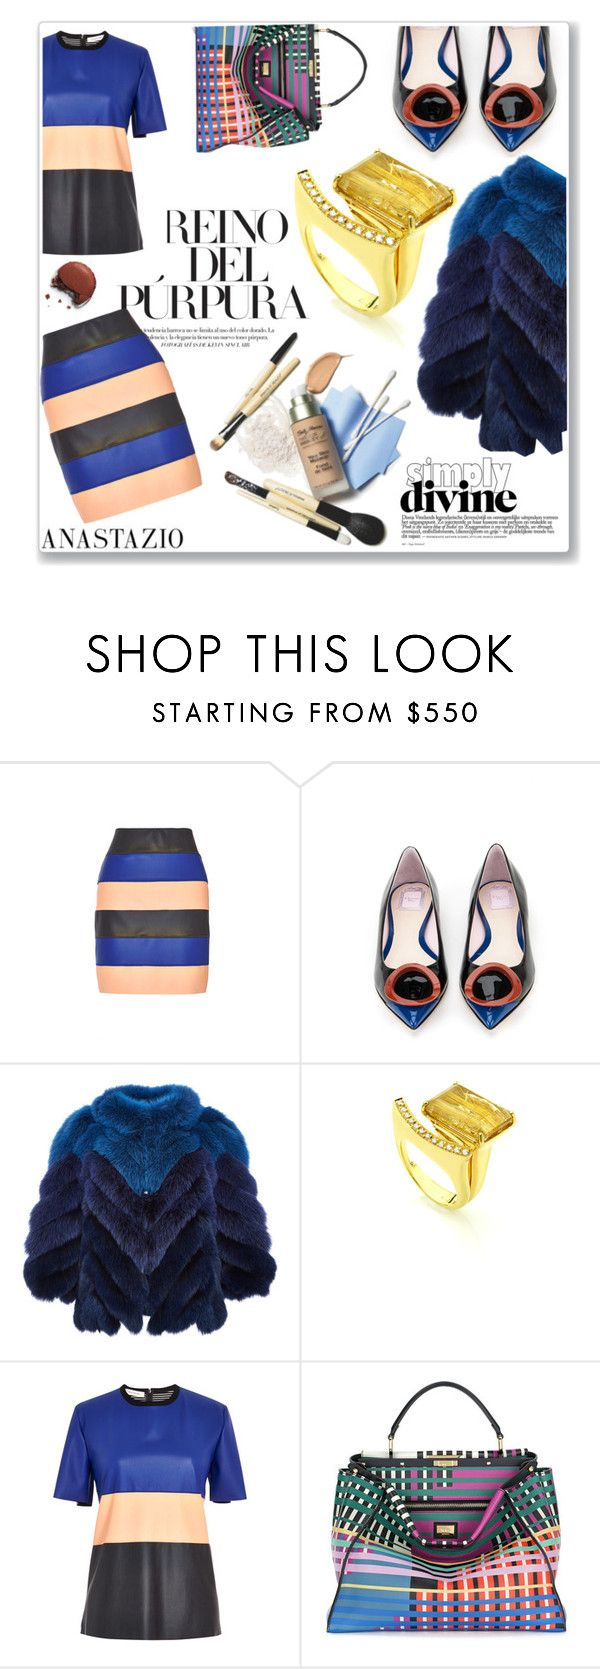 """""""Anastazio-Casual chic"""" by anastazio-kotsopoulos ❤ liked on Polyvore featuring Cédric Charlier, Christian Dior, J. Mendel, Fendi, women's clothing, women, female, woman, misses and juniors"""